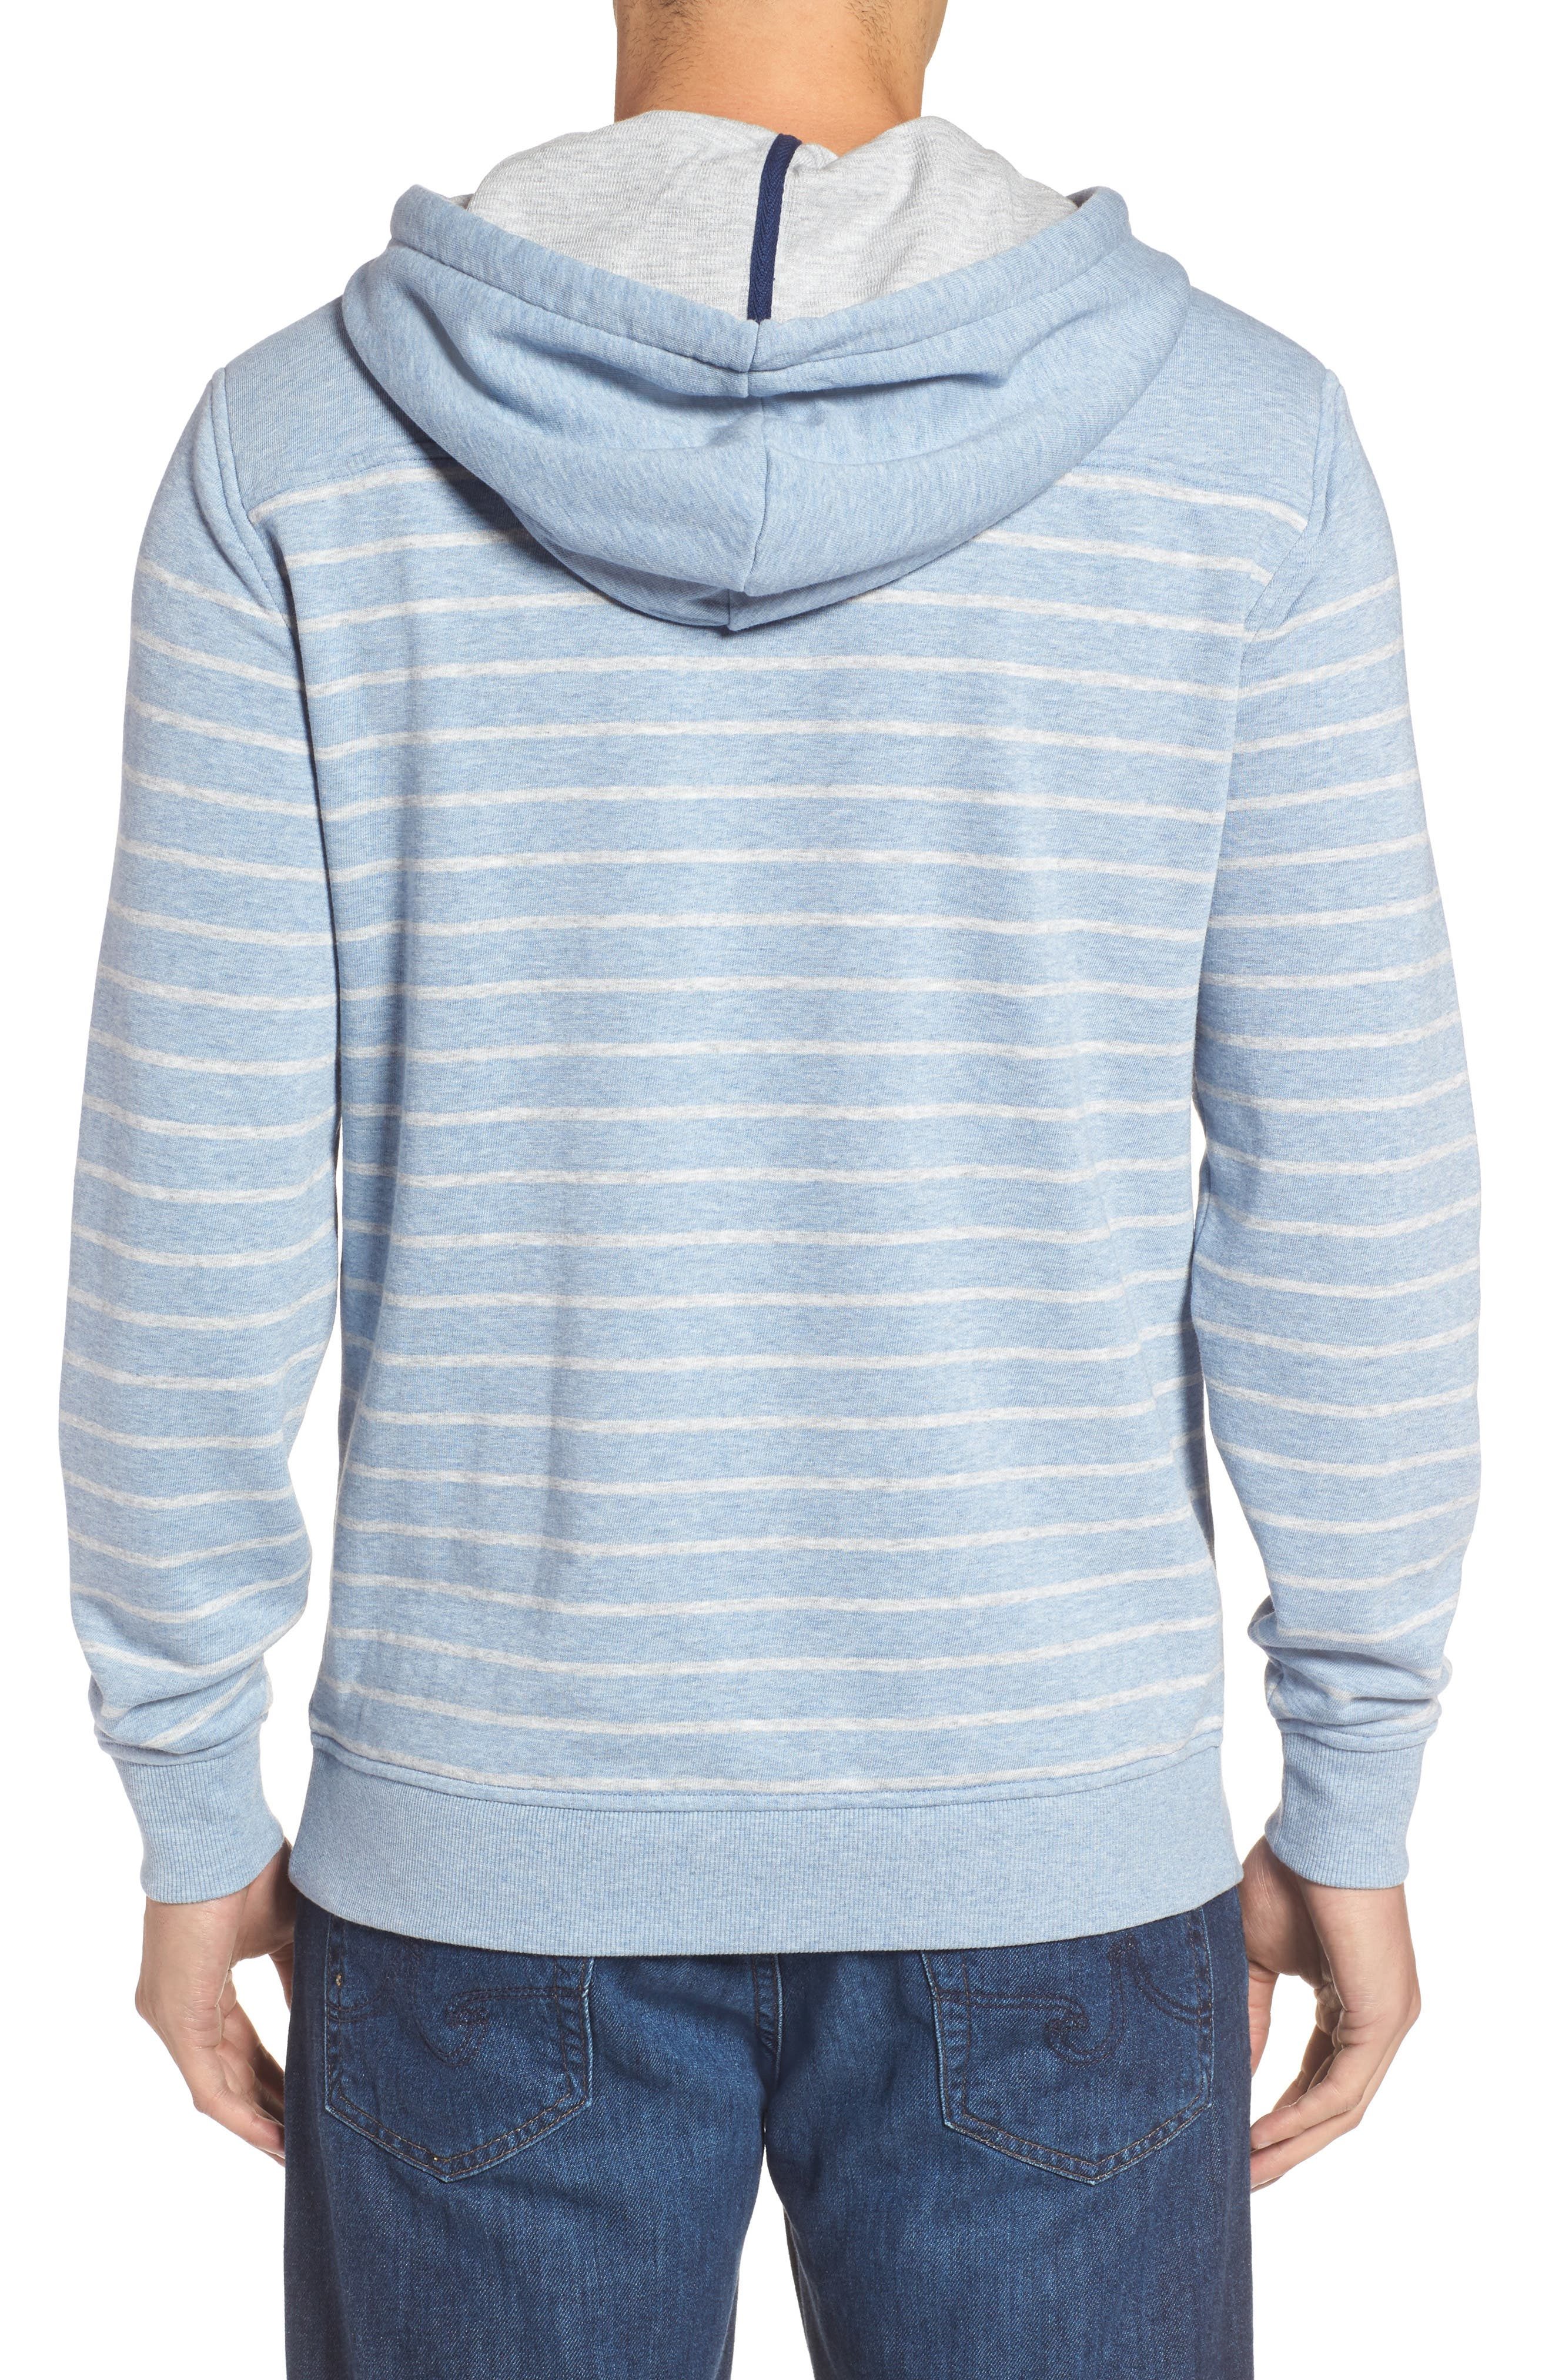 Stripe Washed Cotton Pullover Hoodie,                             Alternate thumbnail 2, color,                             400